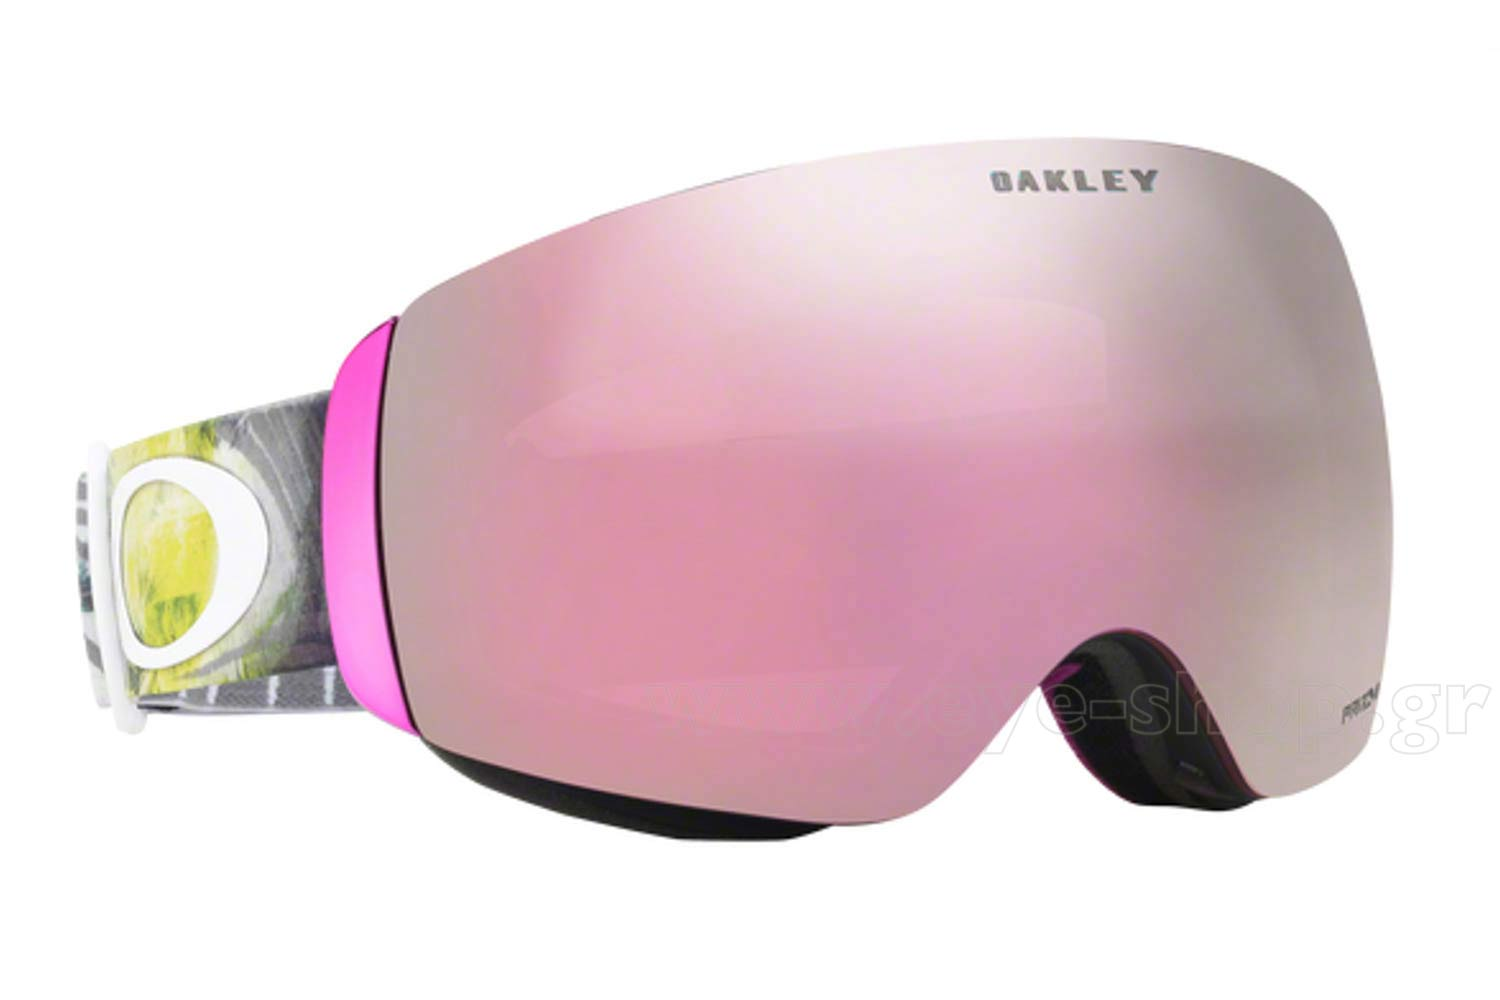 64e38982f38 SUNGLASSES Oakley Flight Deck XM 7064 65 Prizm hi Pink iridium